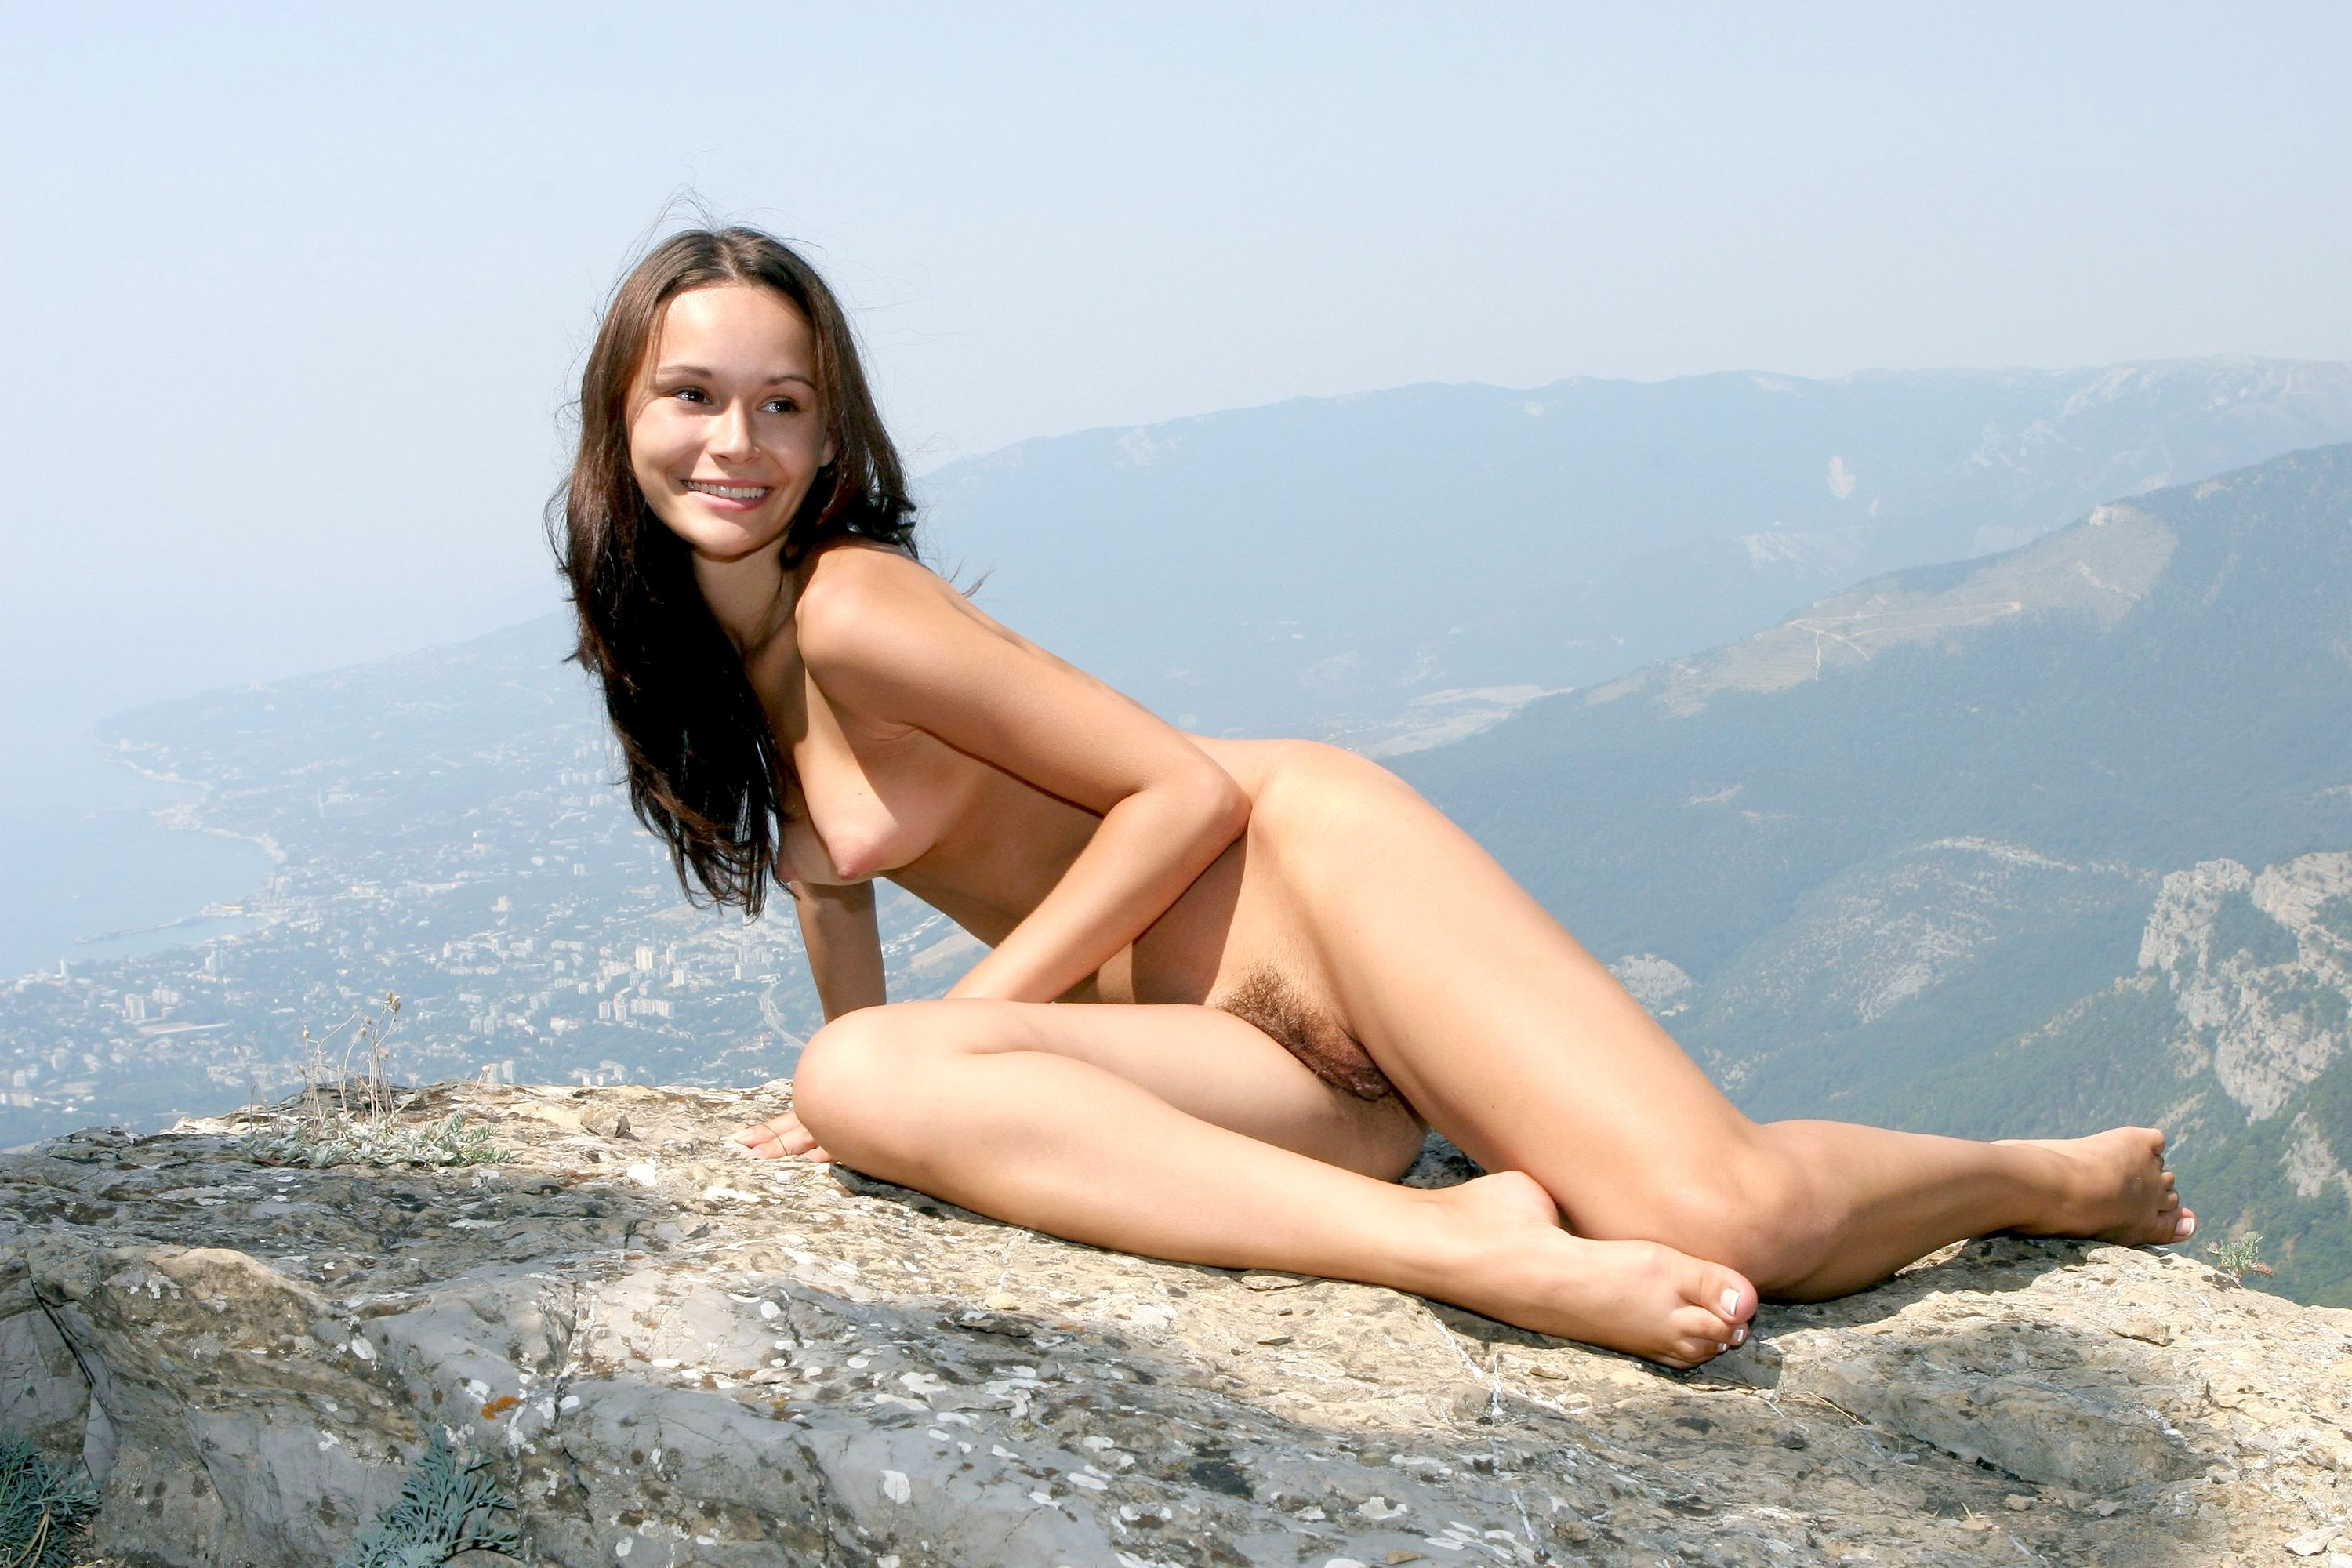 guy-forced-naked-picture-outdoor-daddy-sexgirll